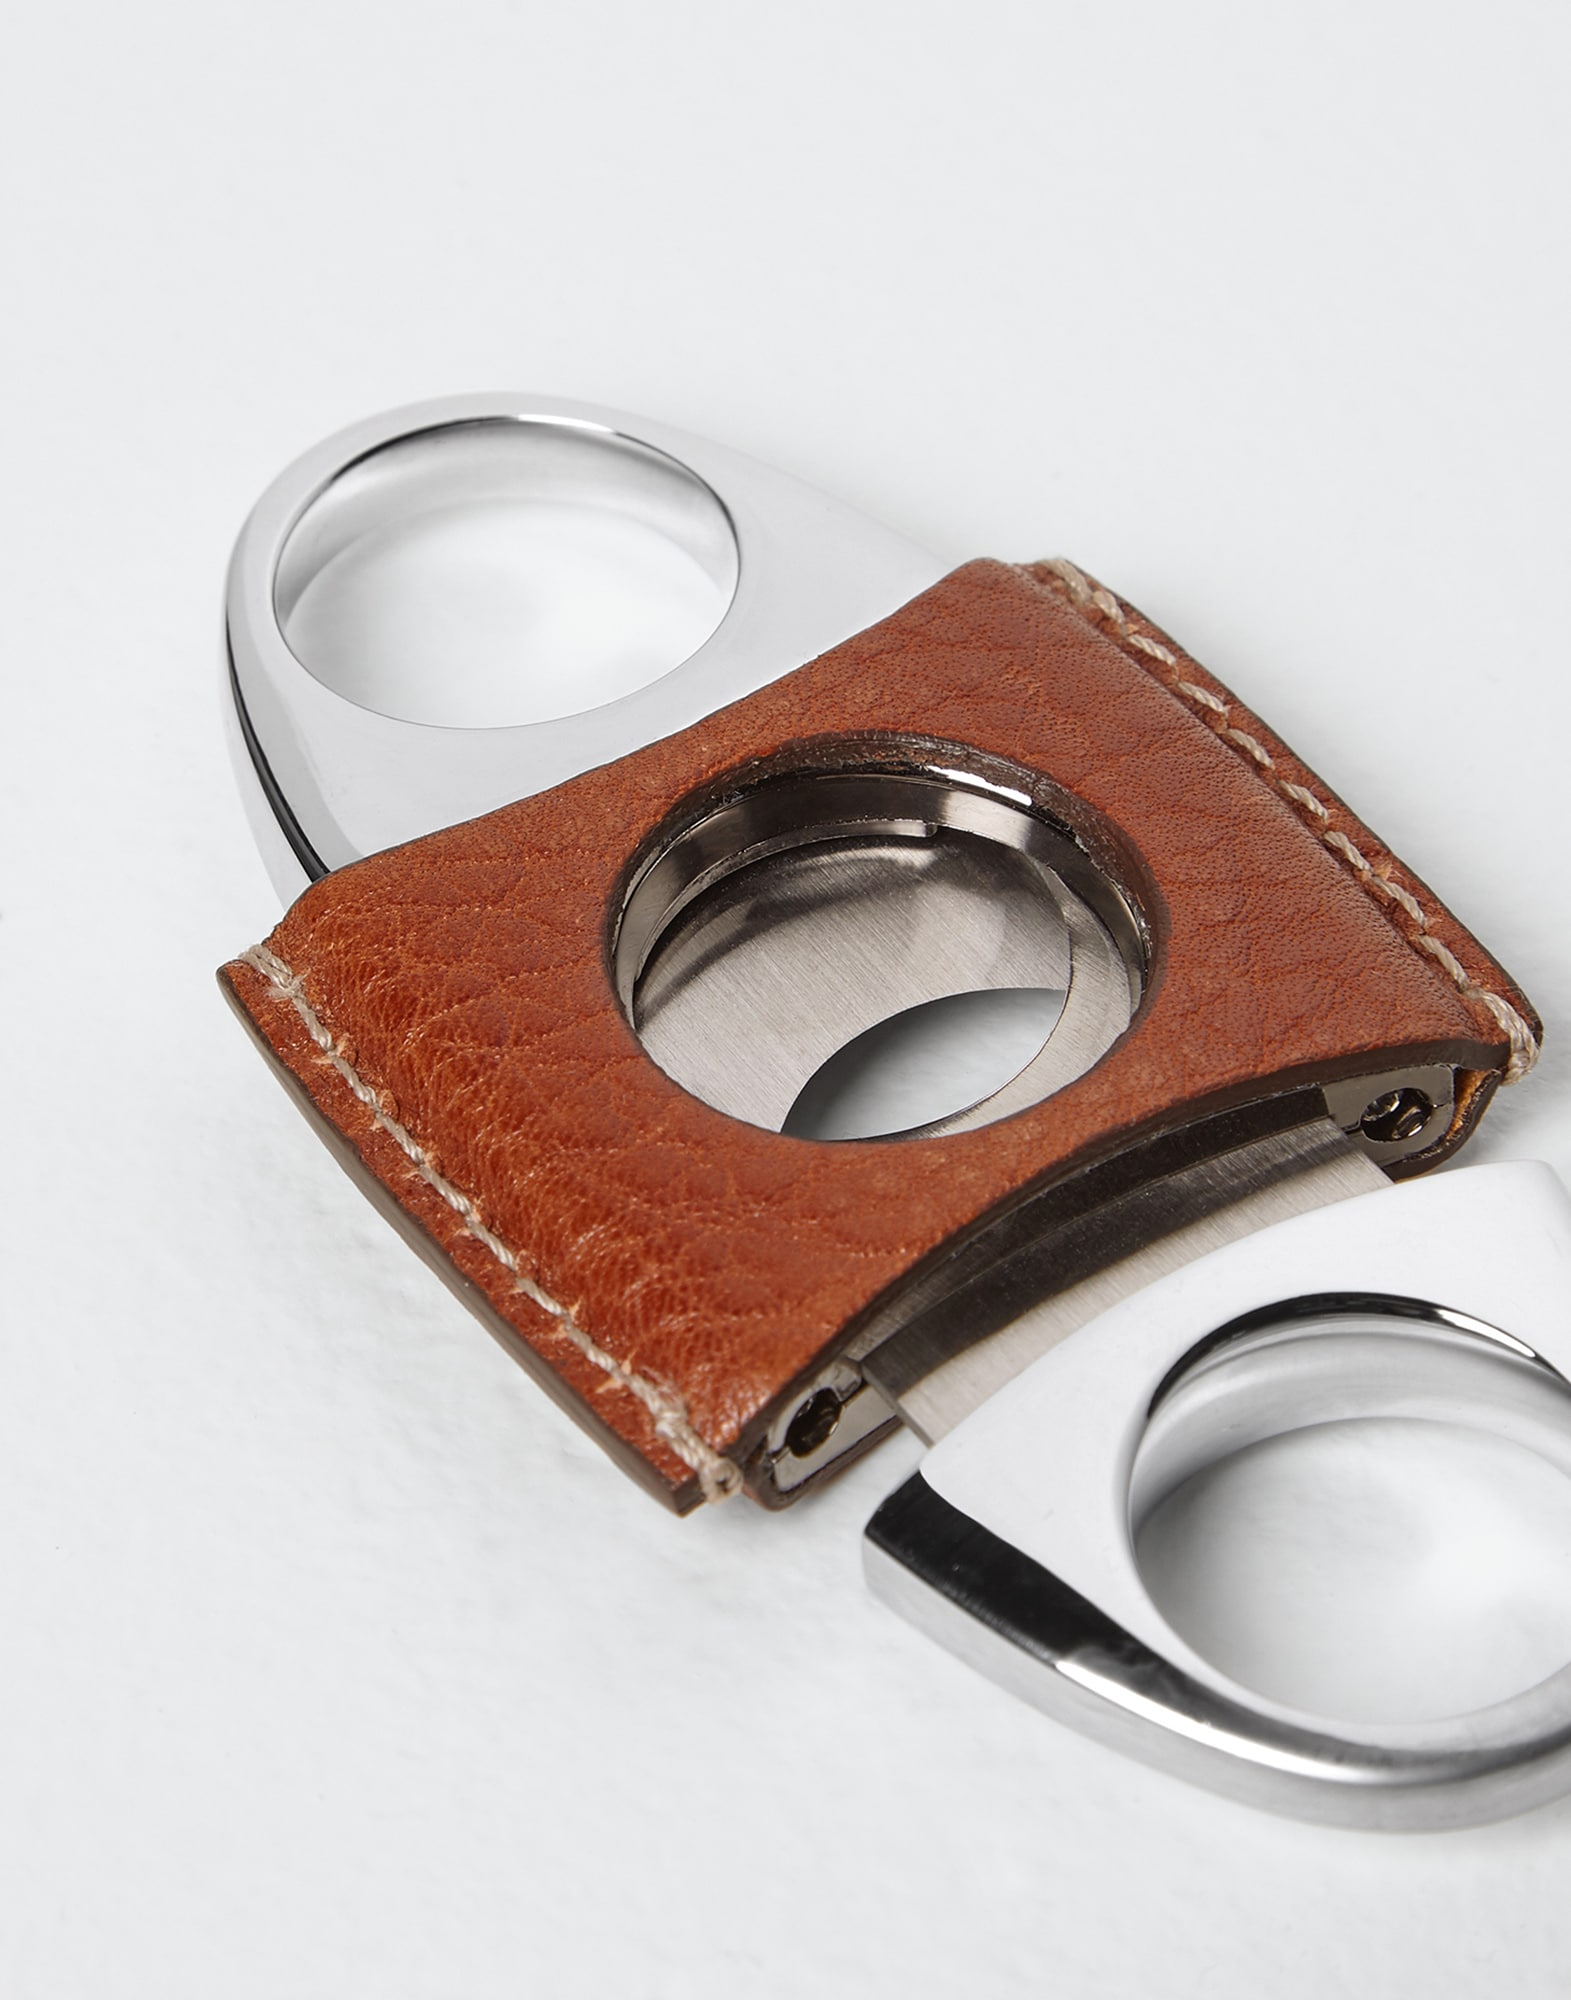 Cigar Cutter - Detail